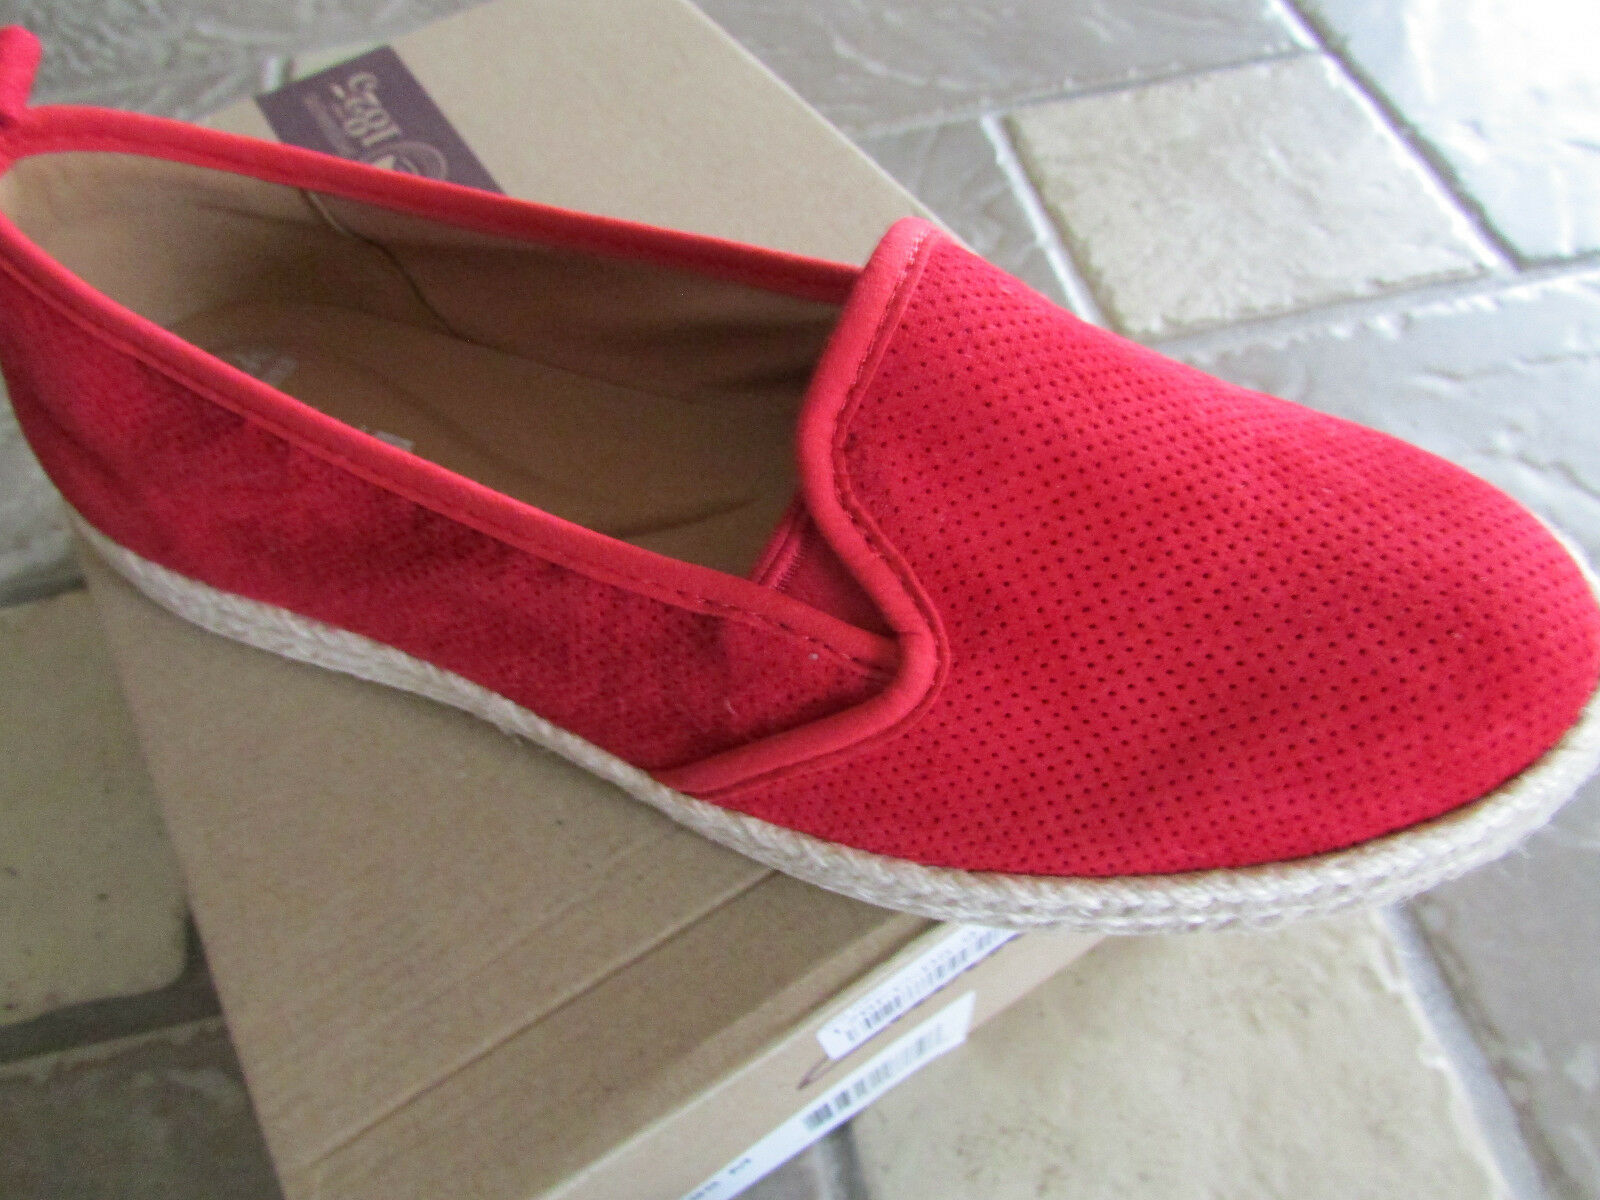 NEW CLARKS AZELLA rouge PERF LOAFER chaussures femmes 9.5 SUEDE SLIP ONS FREE SHIP